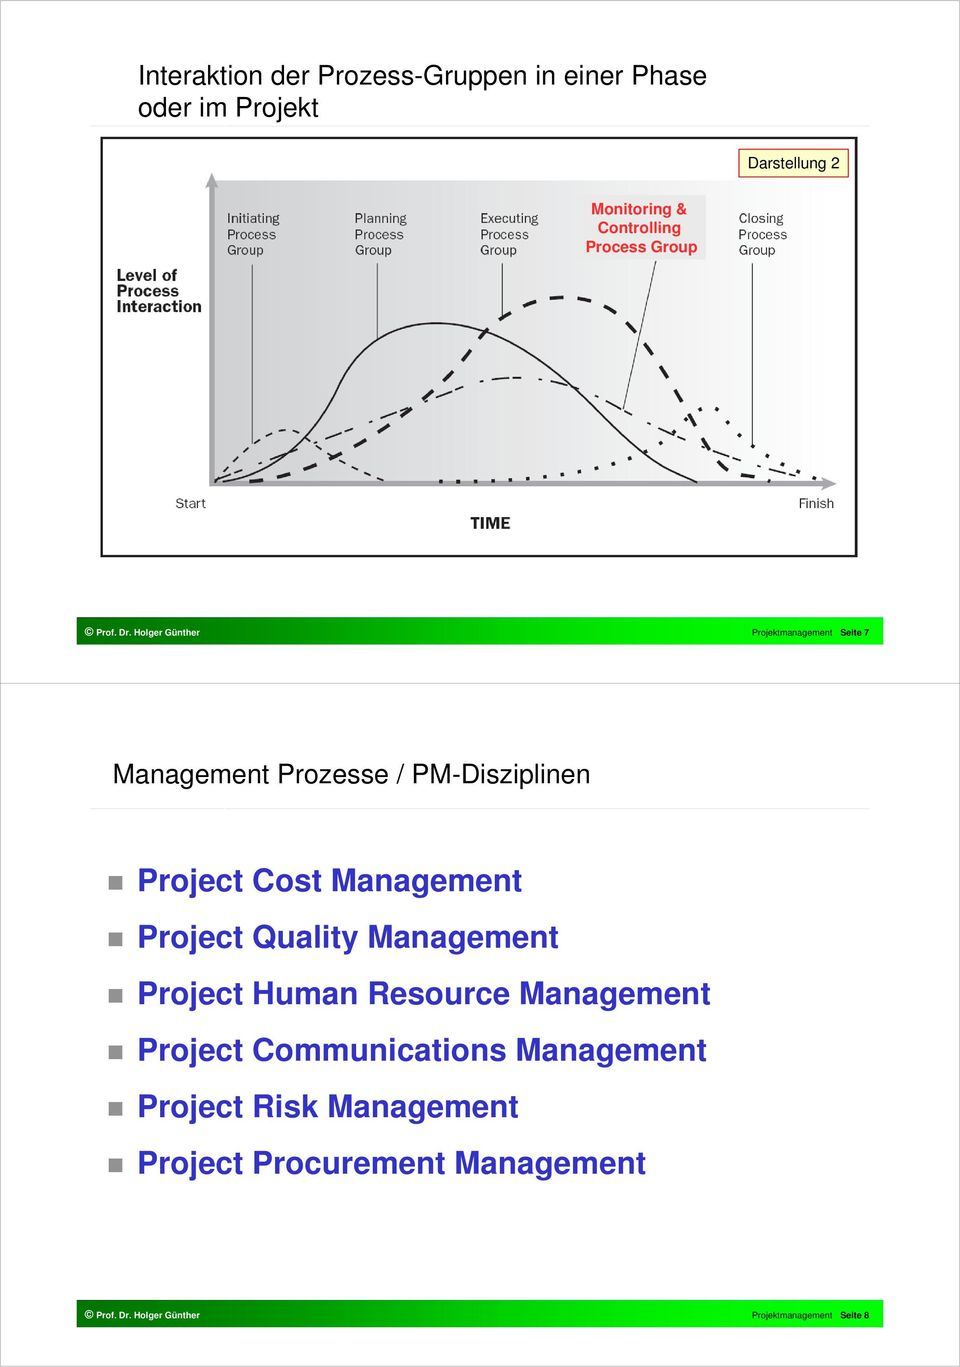 Project Cost Management Project Quality Management Project Human Resource Management Project